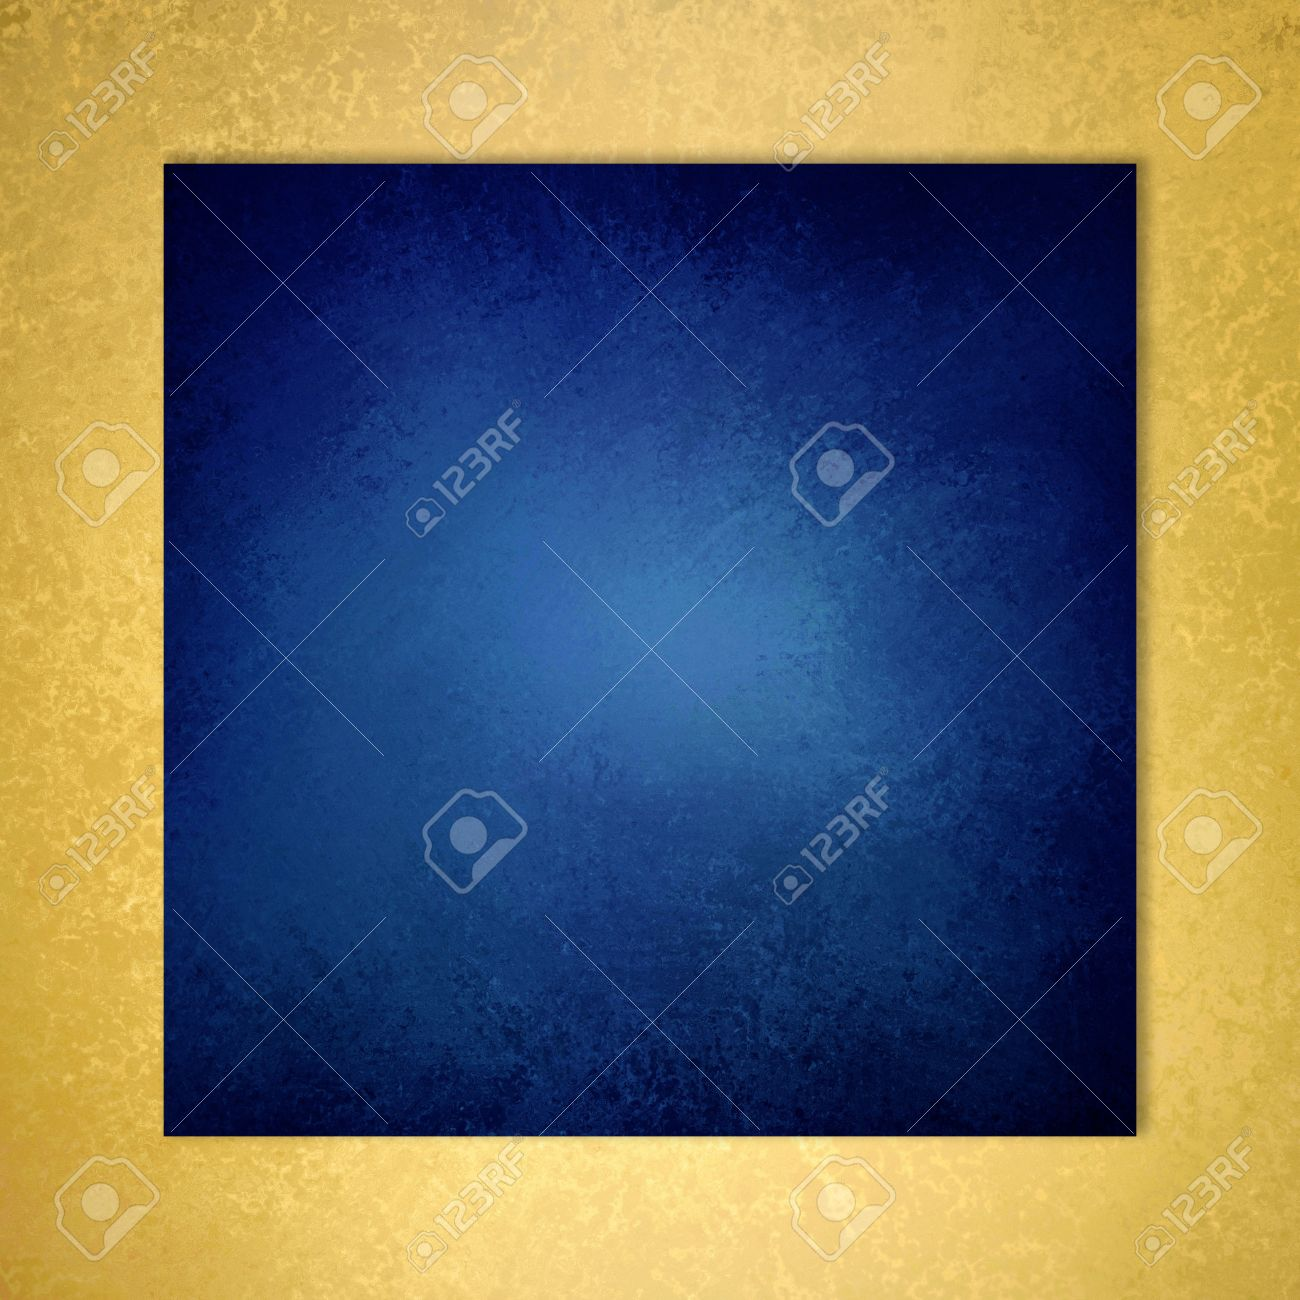 sapphire blue background with elegant metallic gold border and vintage distressed texture - 47624796